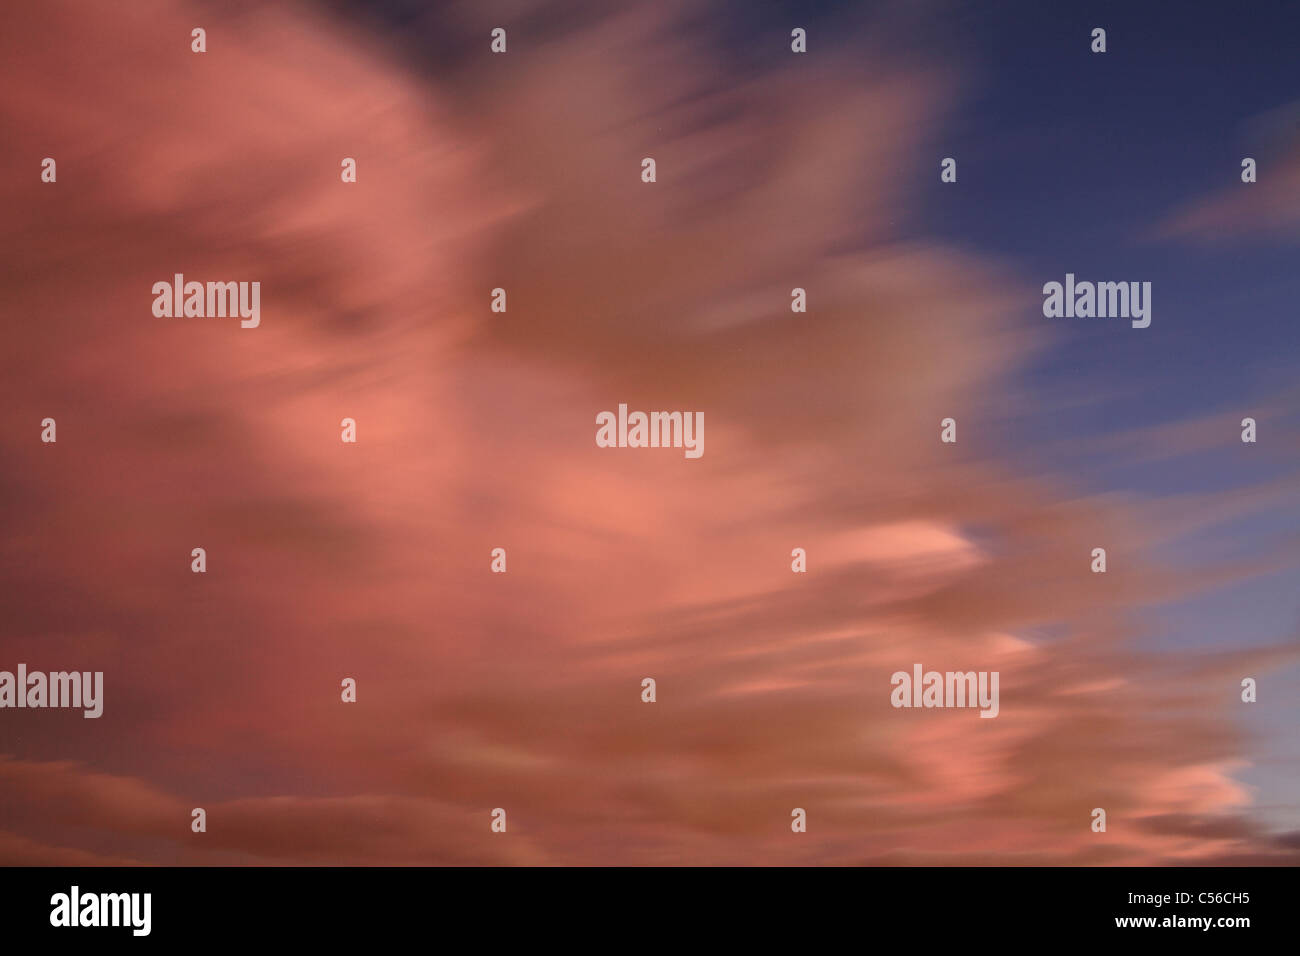 Sky And Cloud Scene, An Angry And Ominous Looking Twilight Cloudscape In Motion Blur - Stock Image